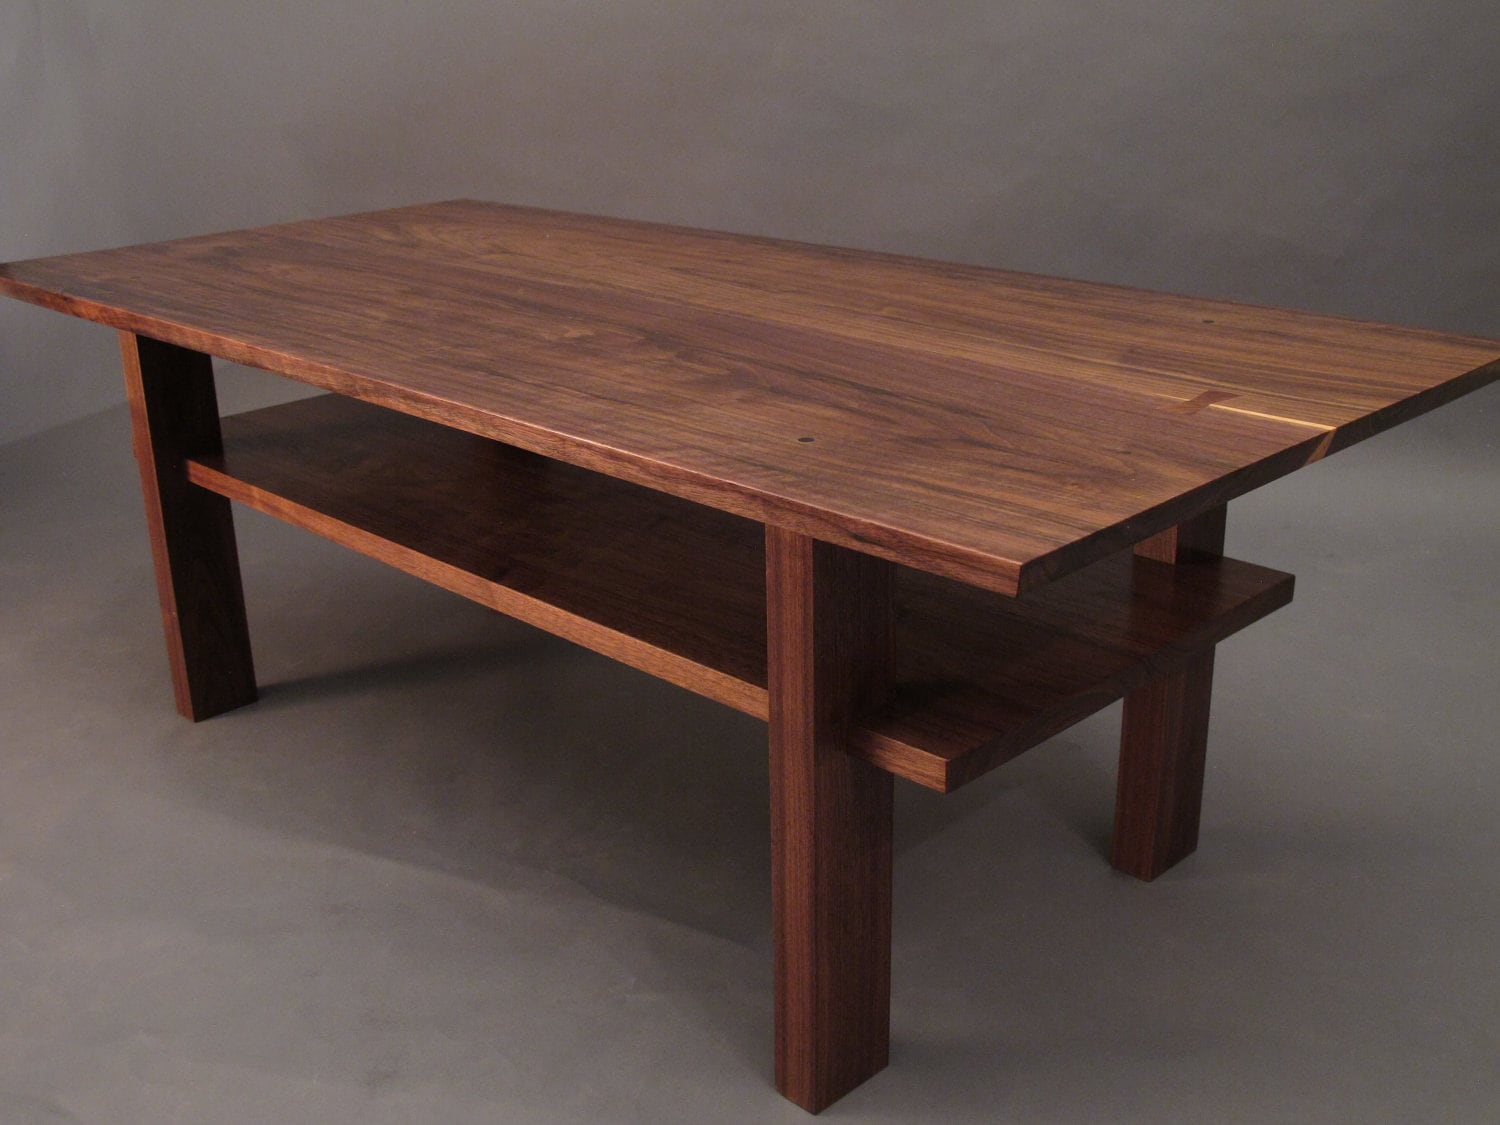 Walnut Coffee Table small wood tables for living room Narrow